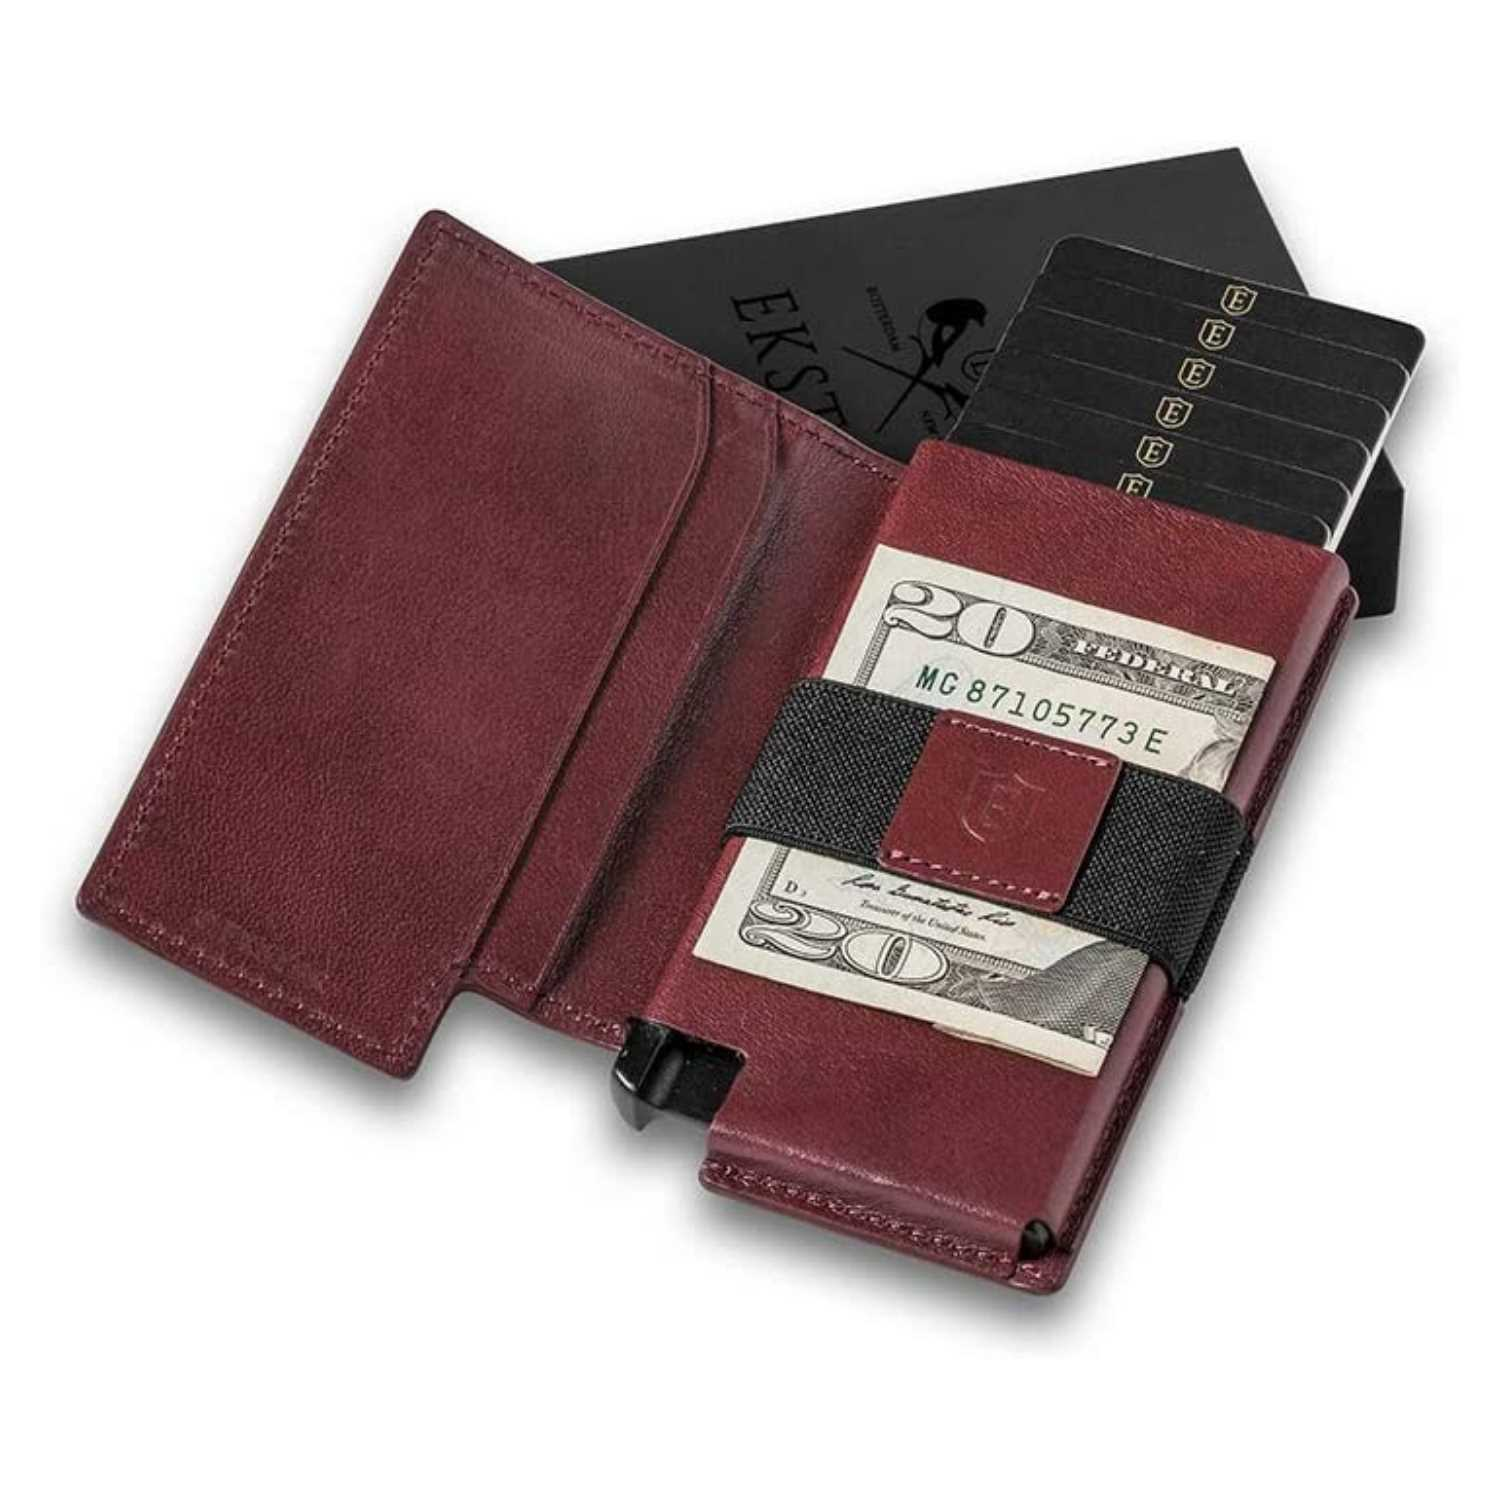 Ekster Secure Premium Trackable Leather Wallet Open with Cash - Luxury Anniversary Gift Ideas For Him